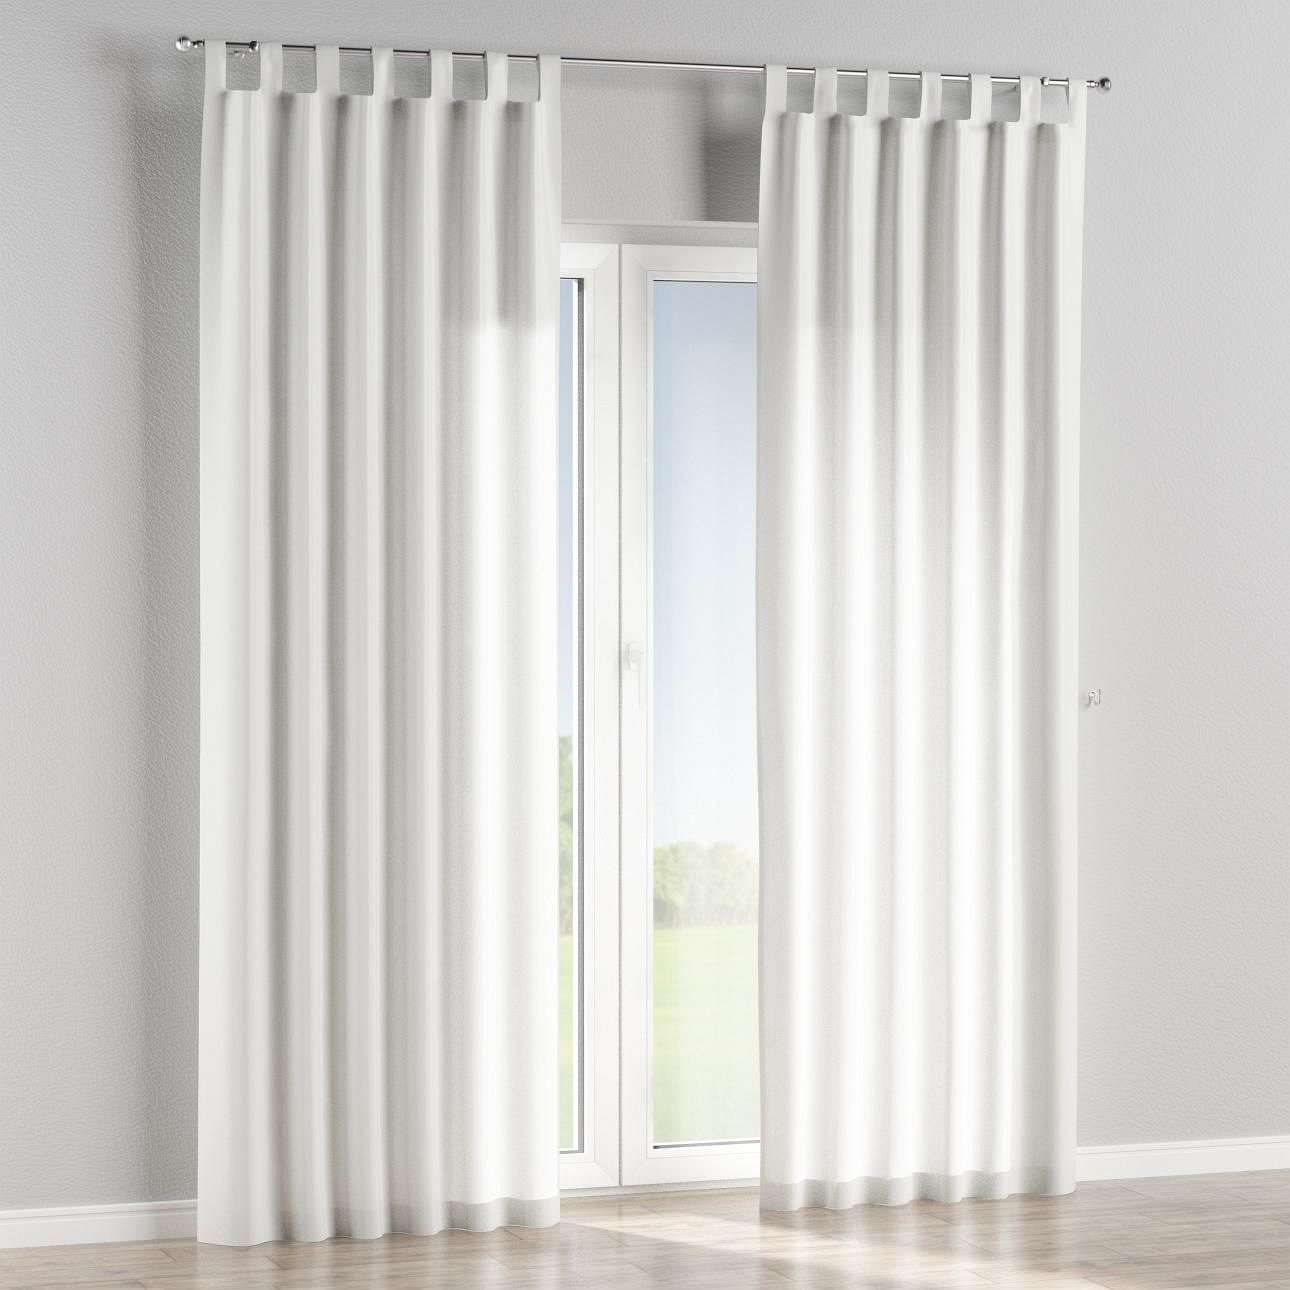 Tab top curtains in collection SALE, fabric: 411-38